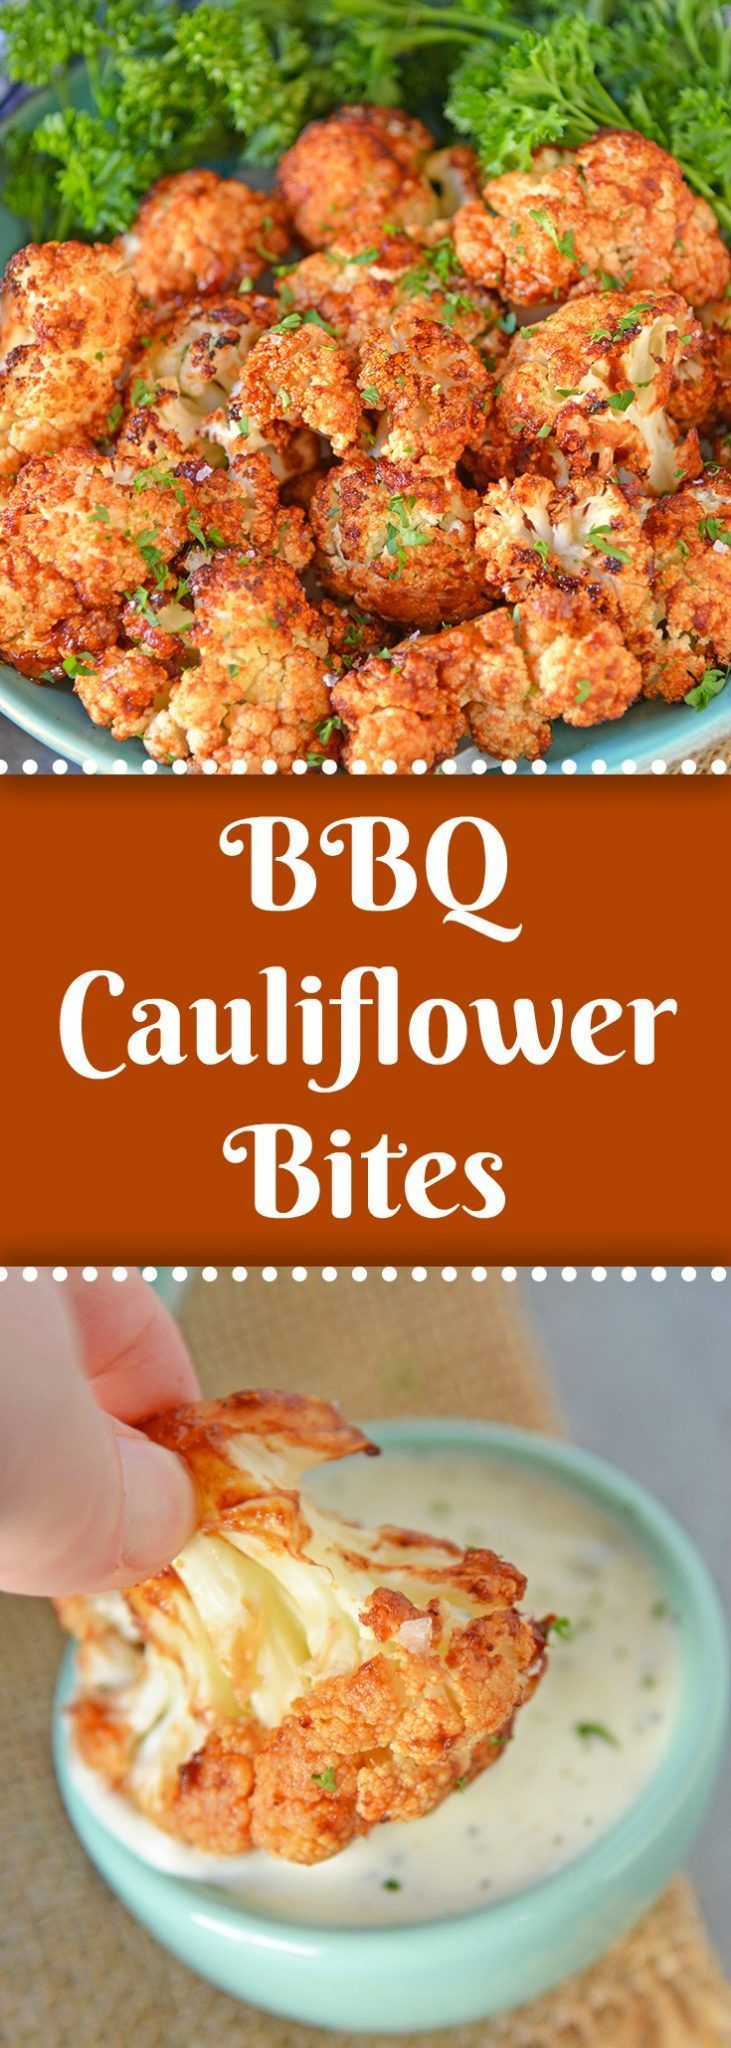 BBQ Cauliflower Bites make a healthy and quick appetizer or side. Make them zest…